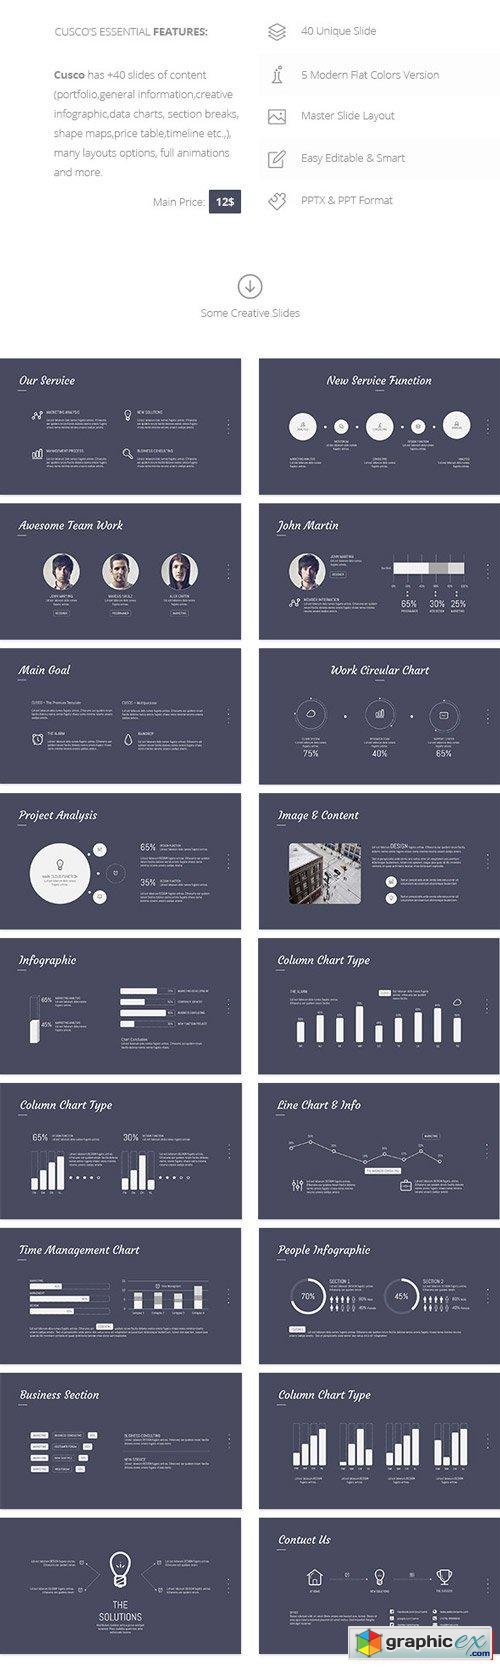 Smart Bundle 3in1 (v2) PowerPoint Templates 10280604